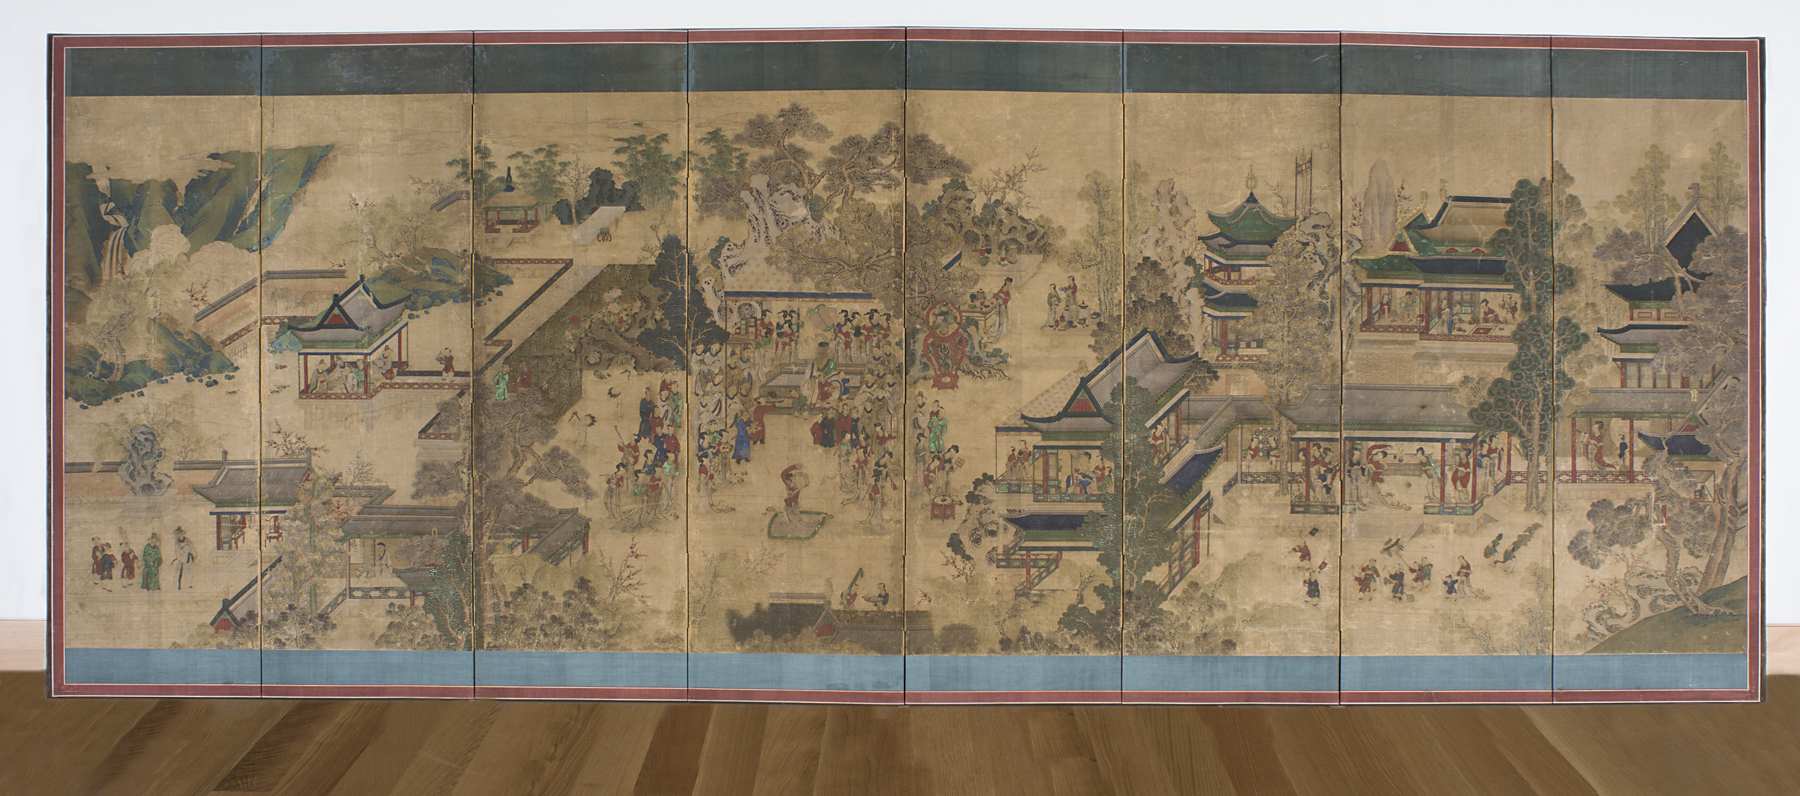 郭汾陽行樂圖 Gwakbunyang hyangrakdo (Guo Ziyi's Enjoyment-of-Life Banquet Screen)